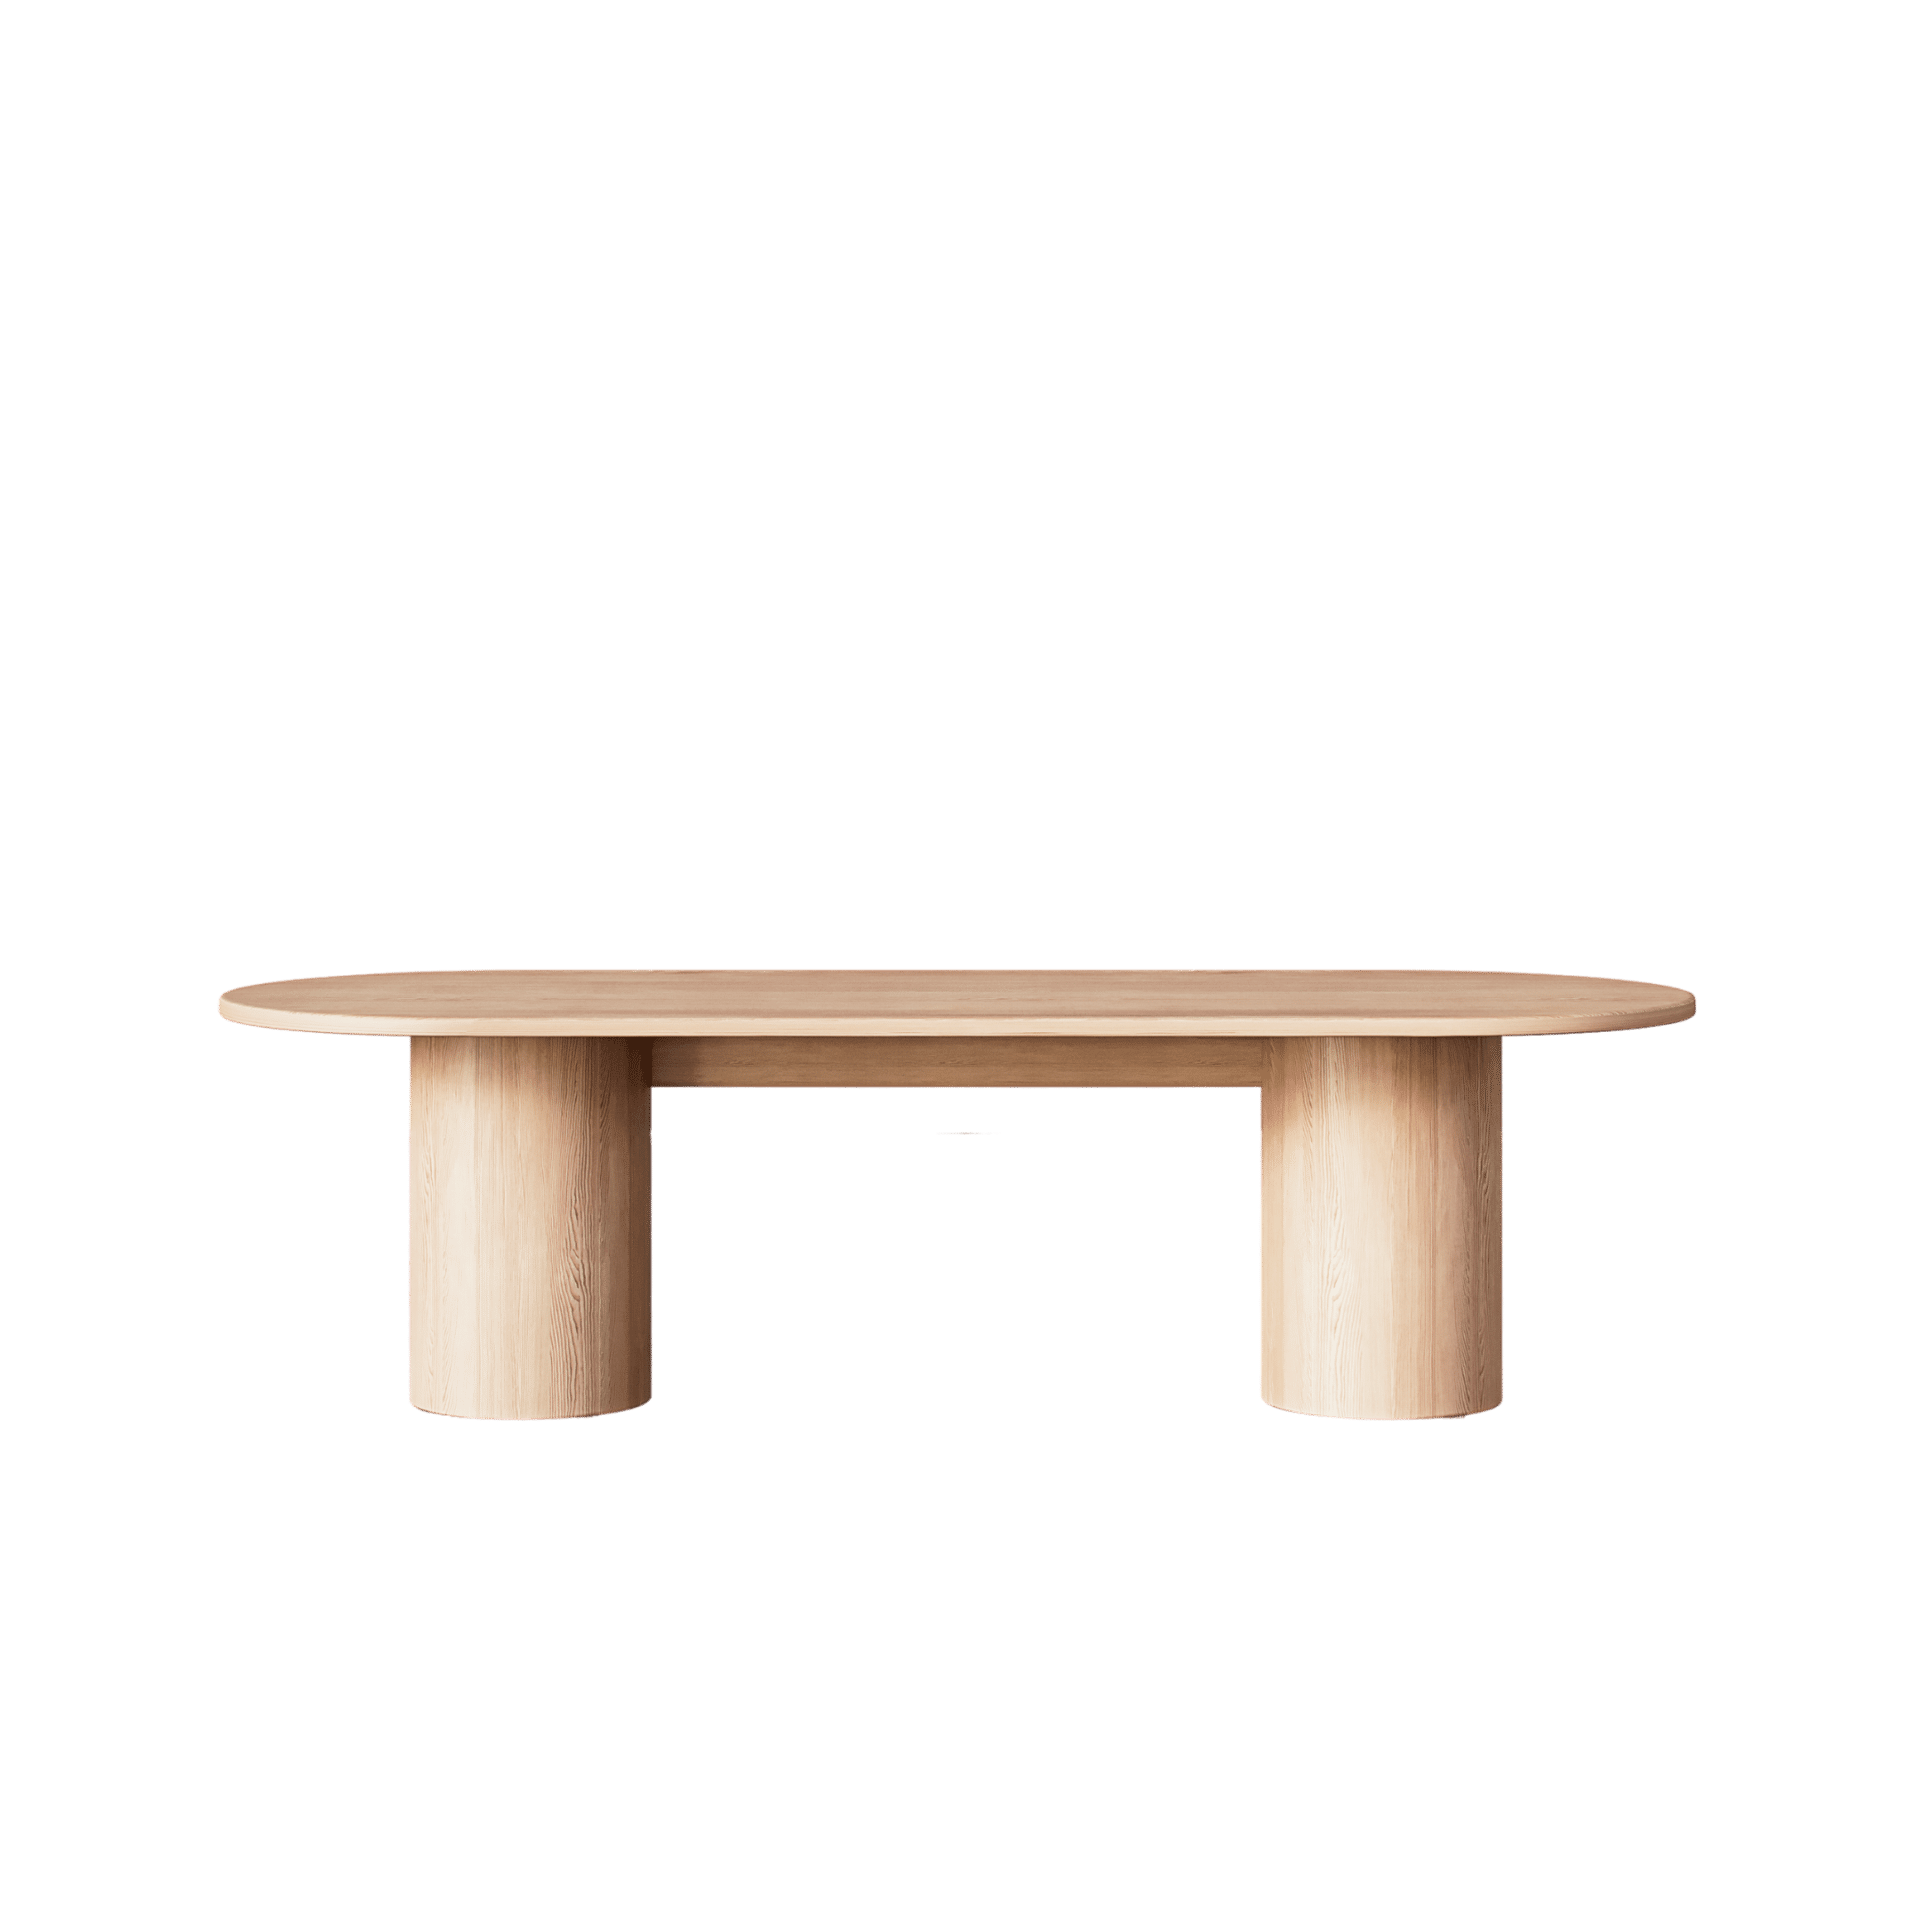 products_gathering_table_round_leg_1